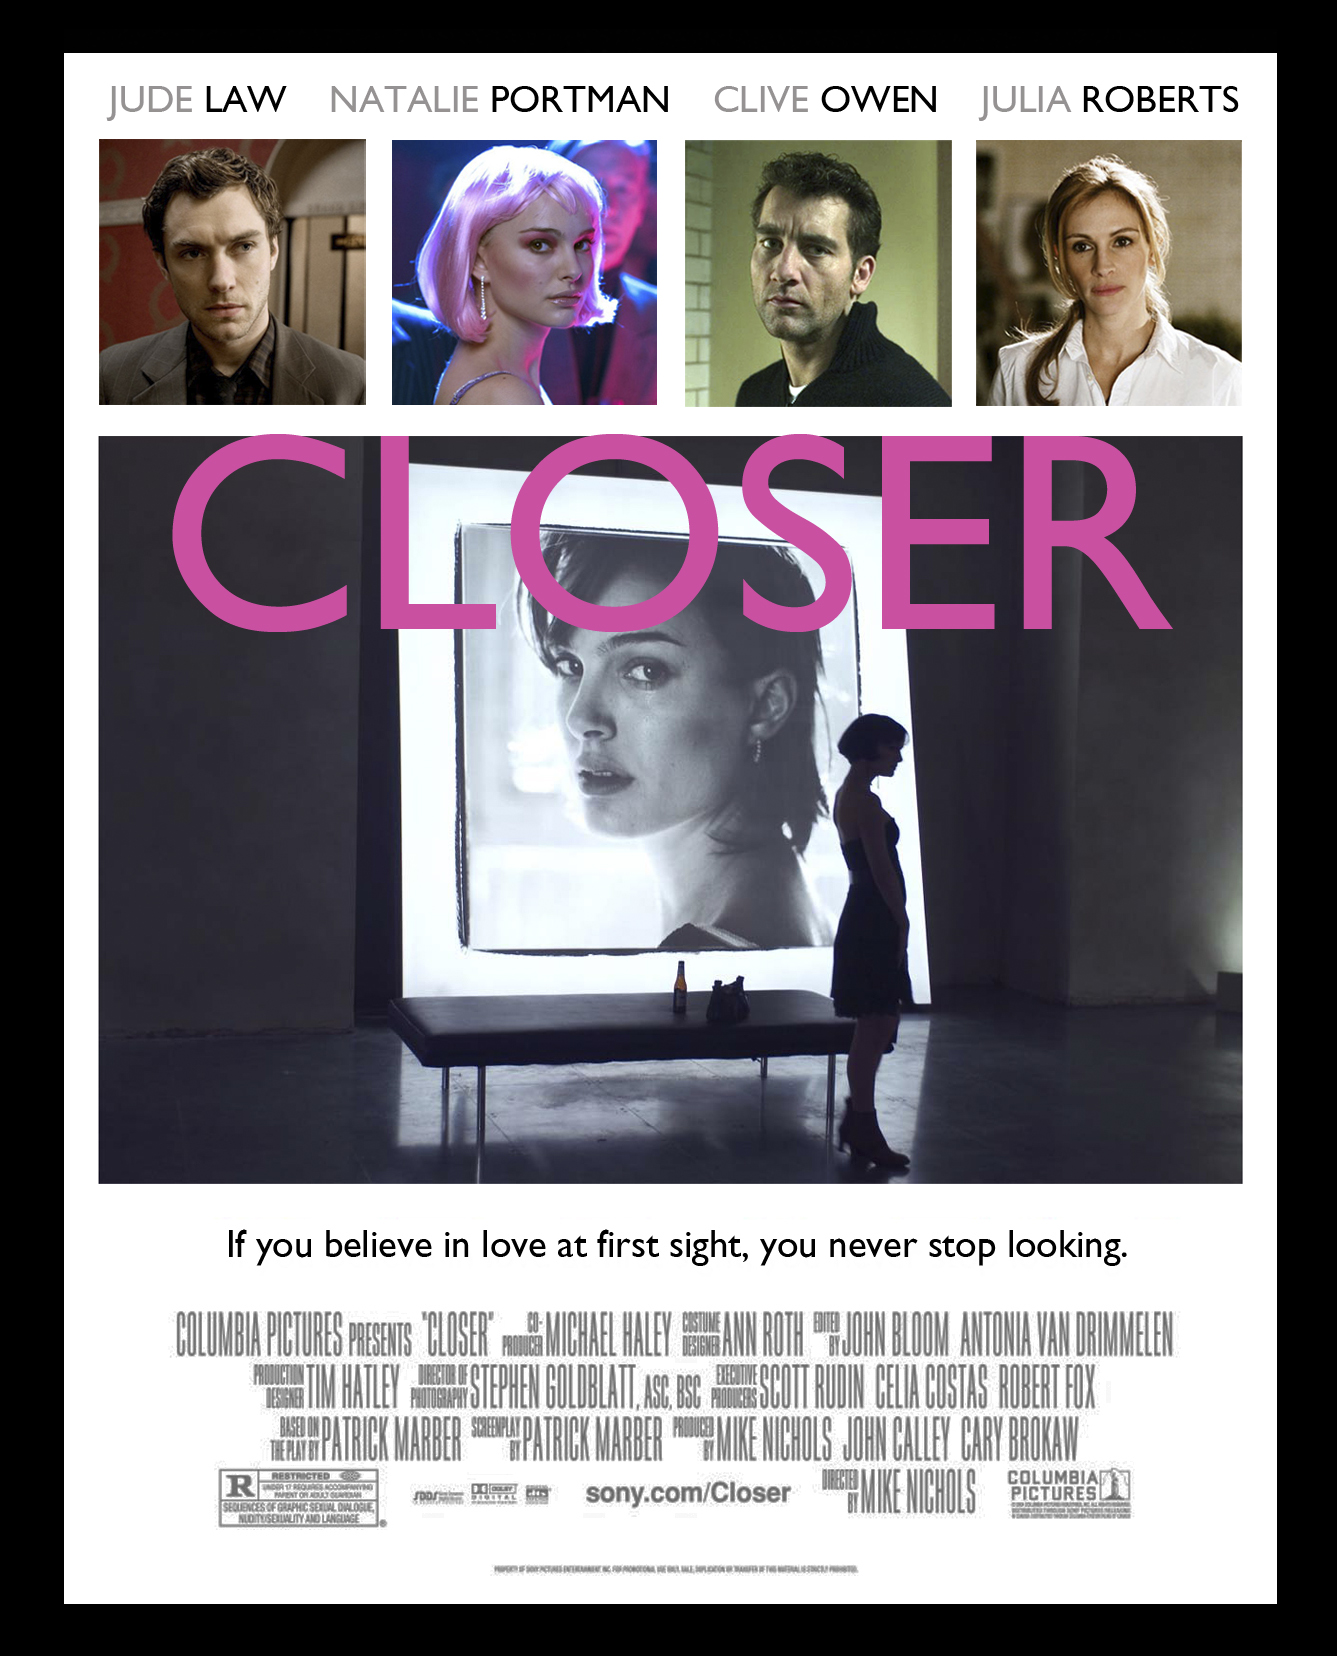 The closer movie posters